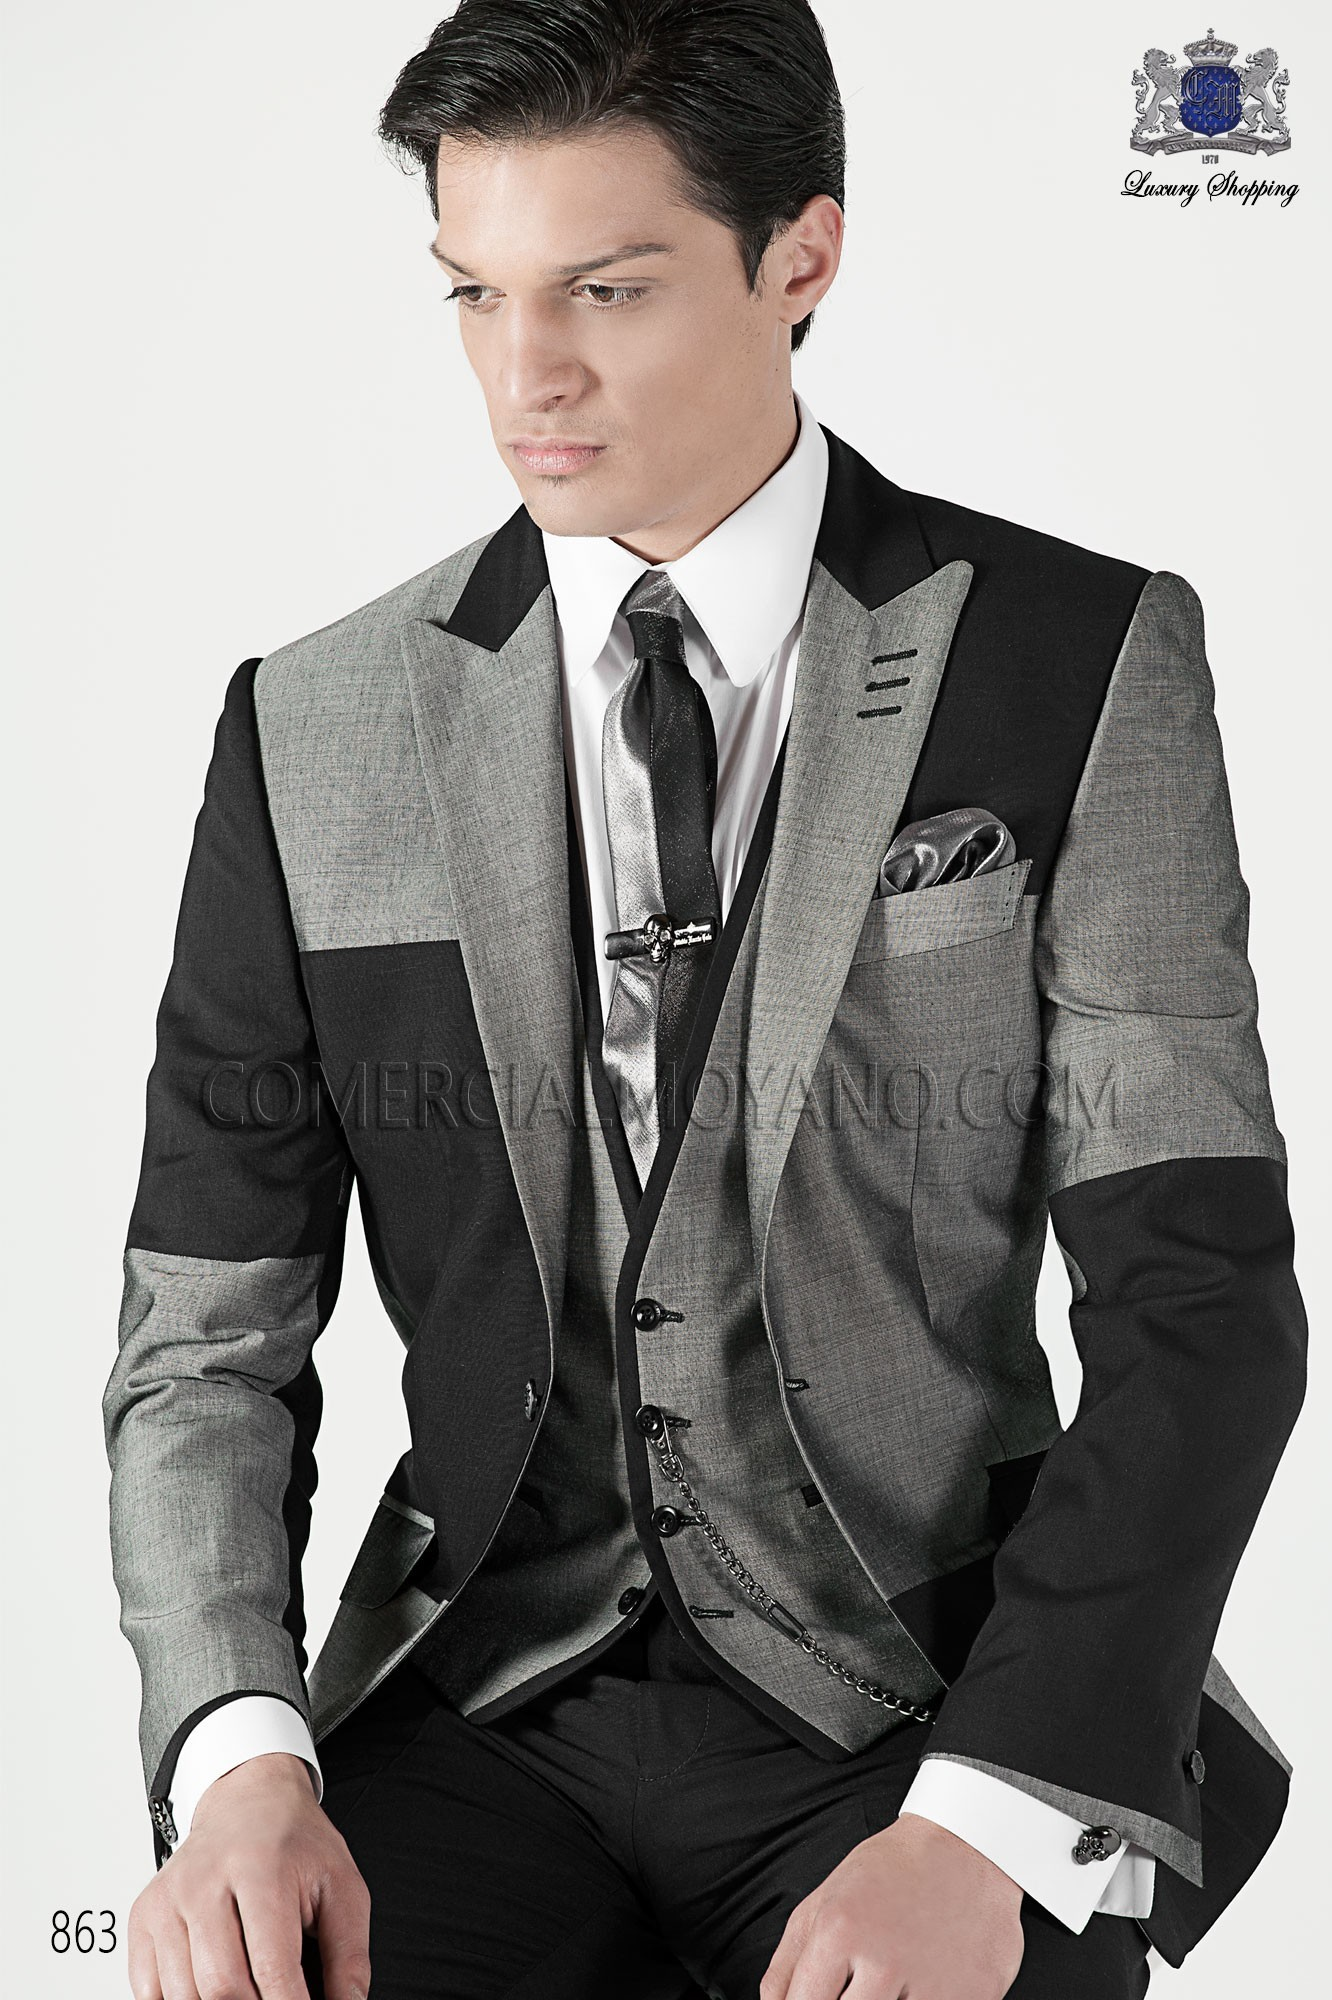 Emotion dark gray and light gray men wedding suit model 863 Ottavio Nuccio Gala